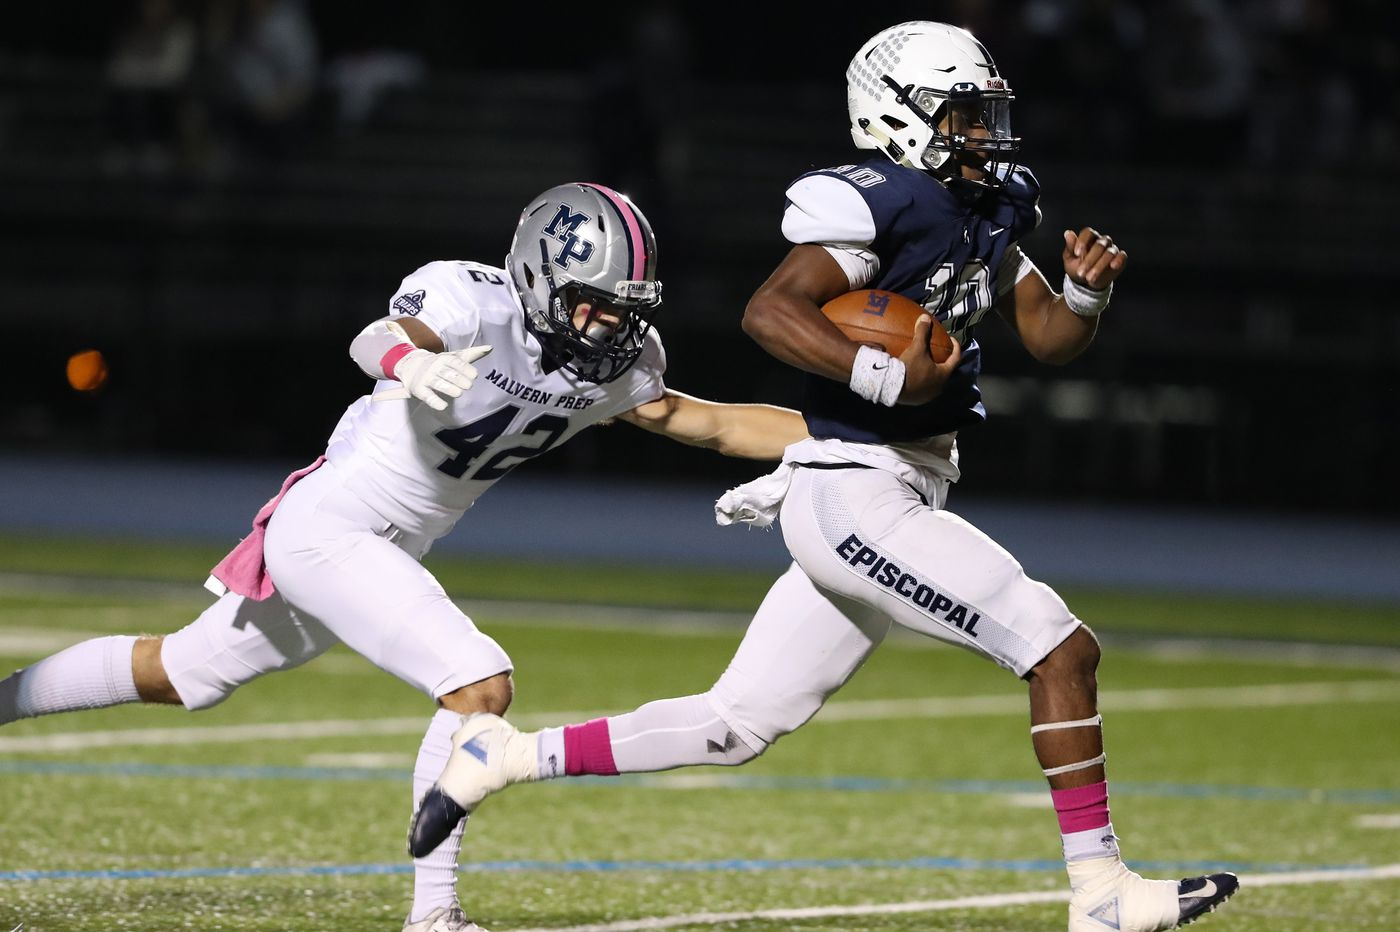 Friday's Southeastern Pa. football roundup: Episcopal Academy remains undefeated in win over Malvern Prep